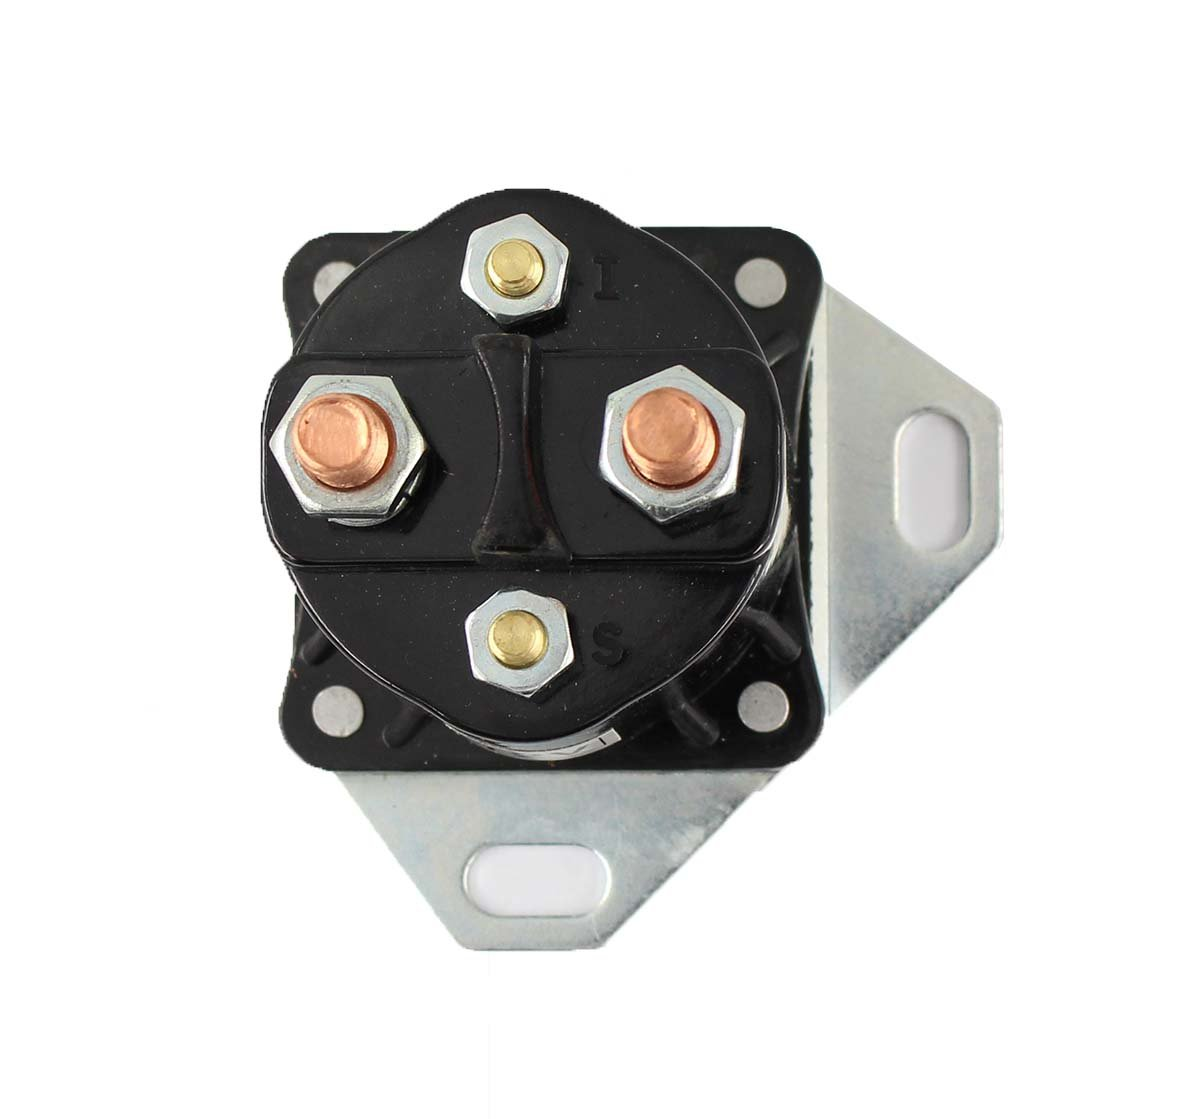 Xtremeamazing New Diesel Glow Plug Relay Solenoid For 1995 7 3 F250 Ford Wiring International T444e 73l 2003 Automotive